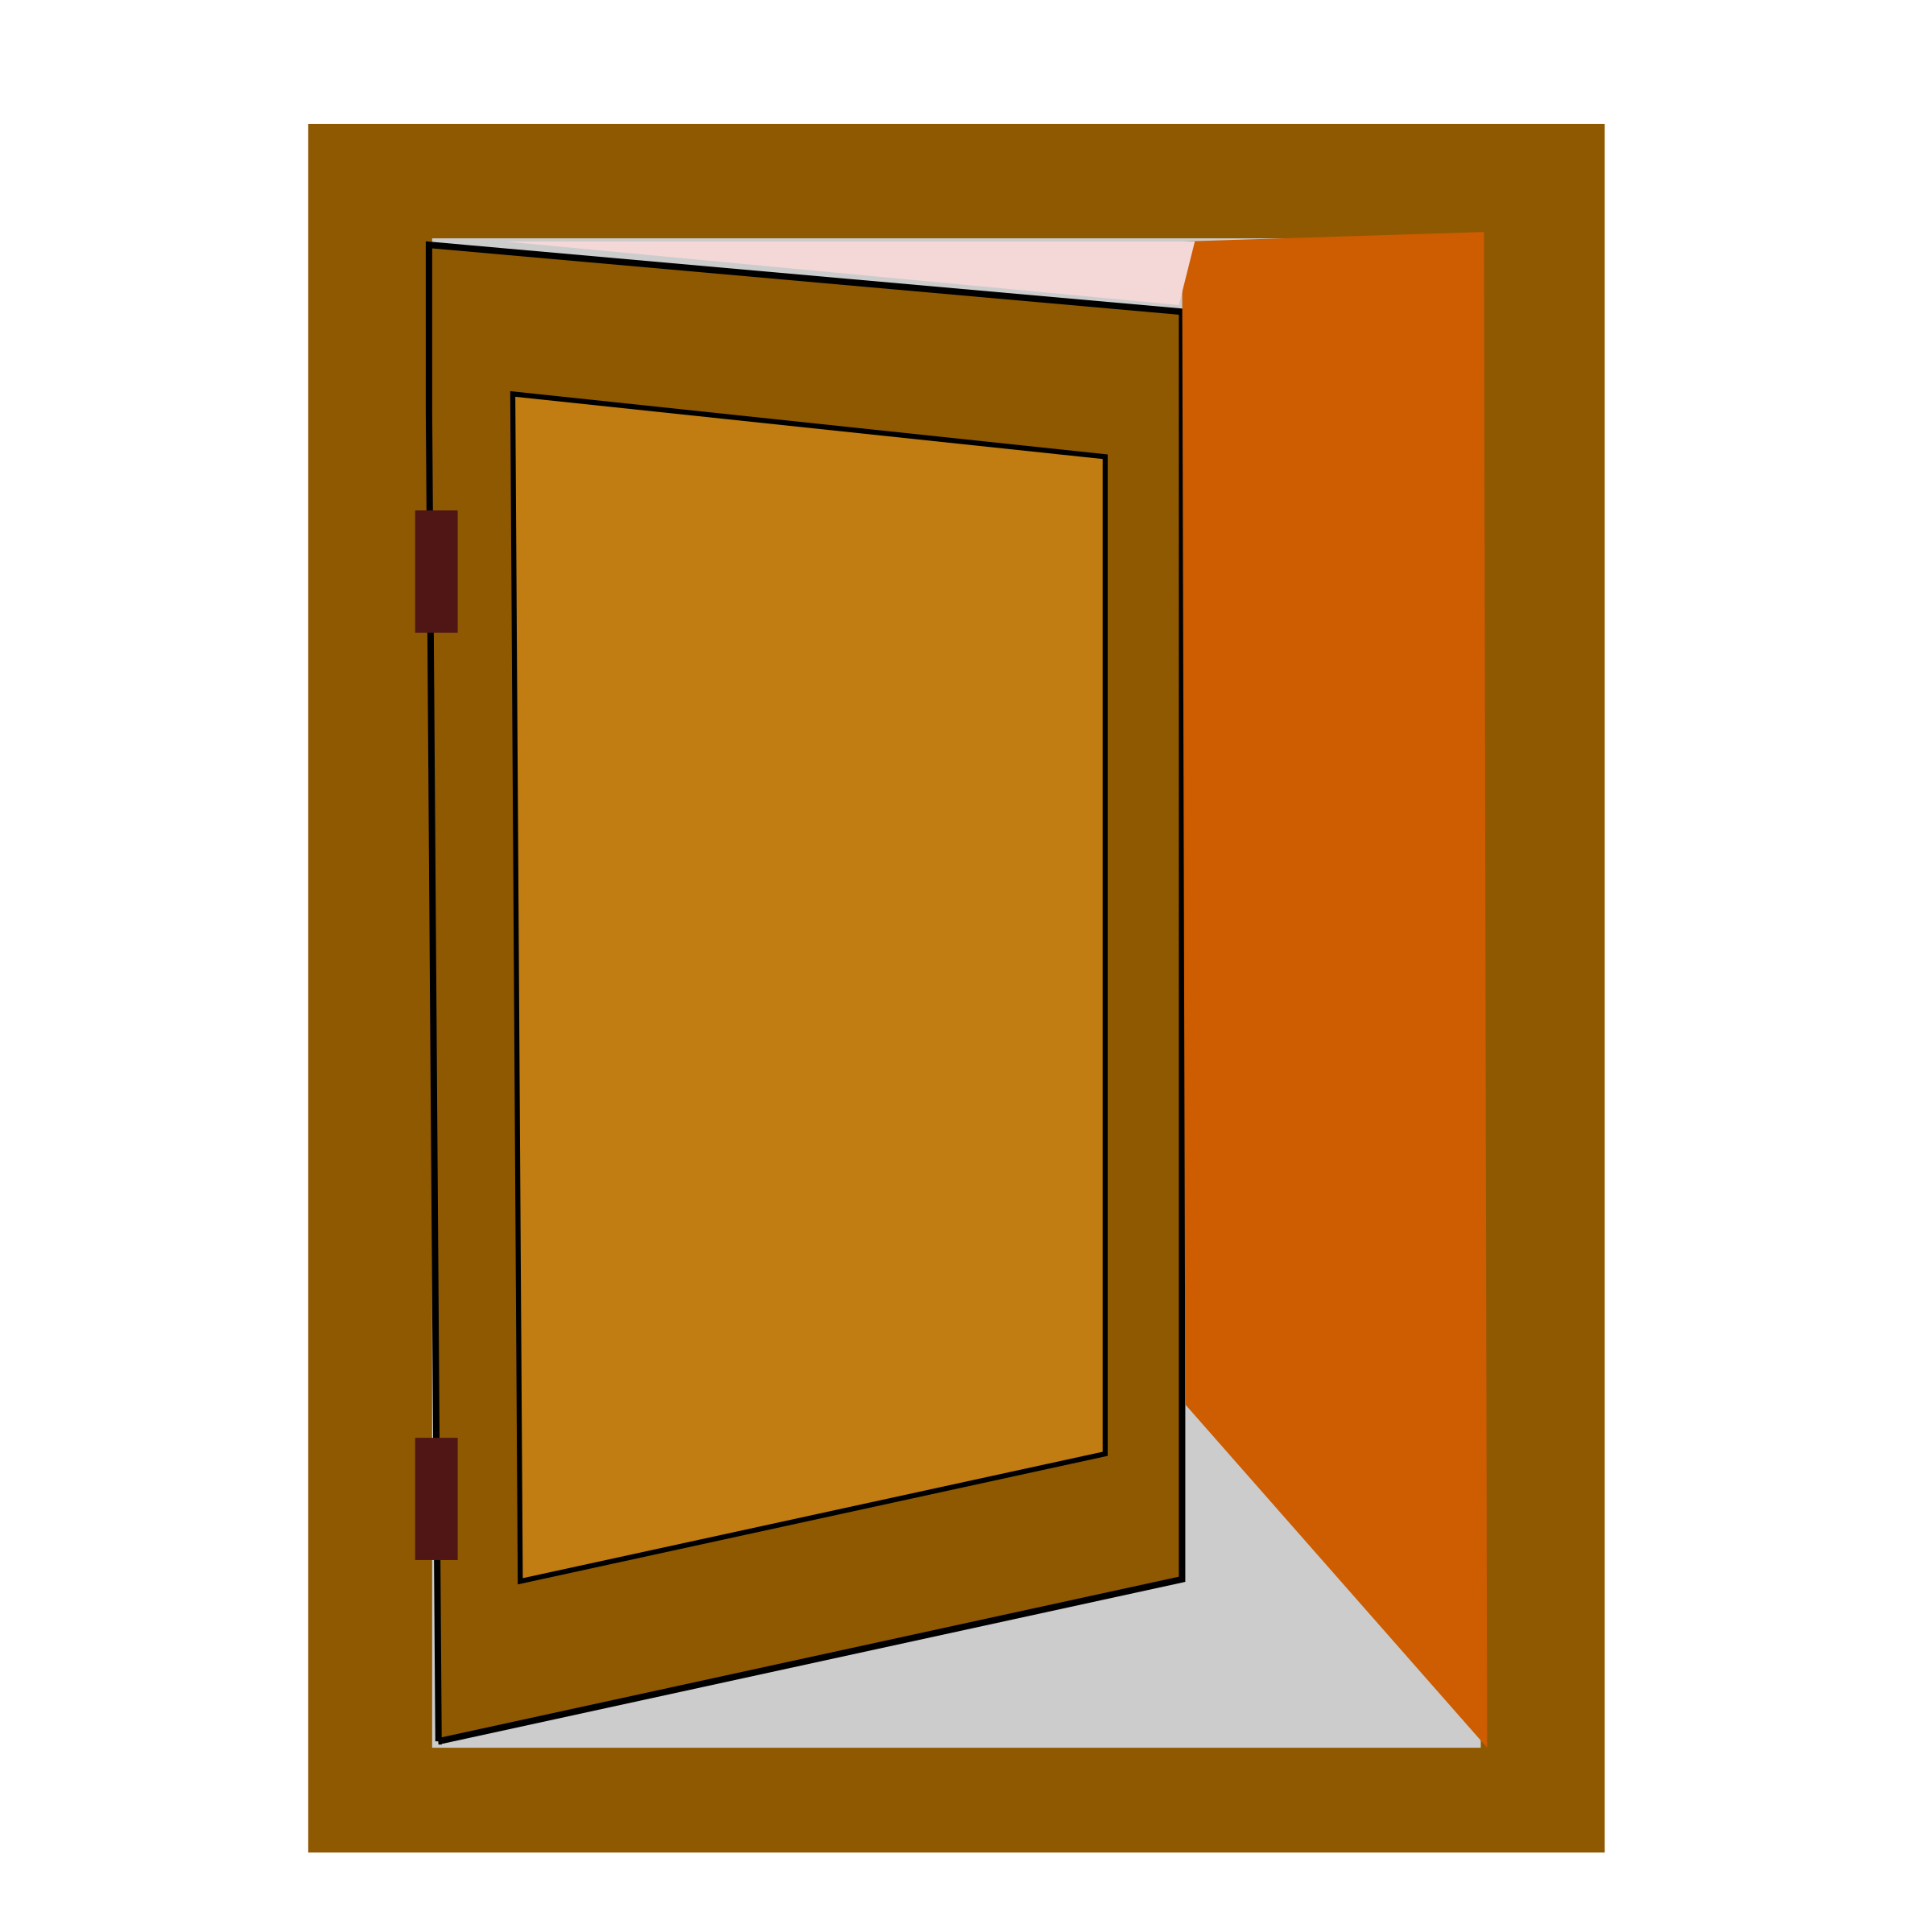 closed door clipart. Closed Door Clipart Free Download Best On